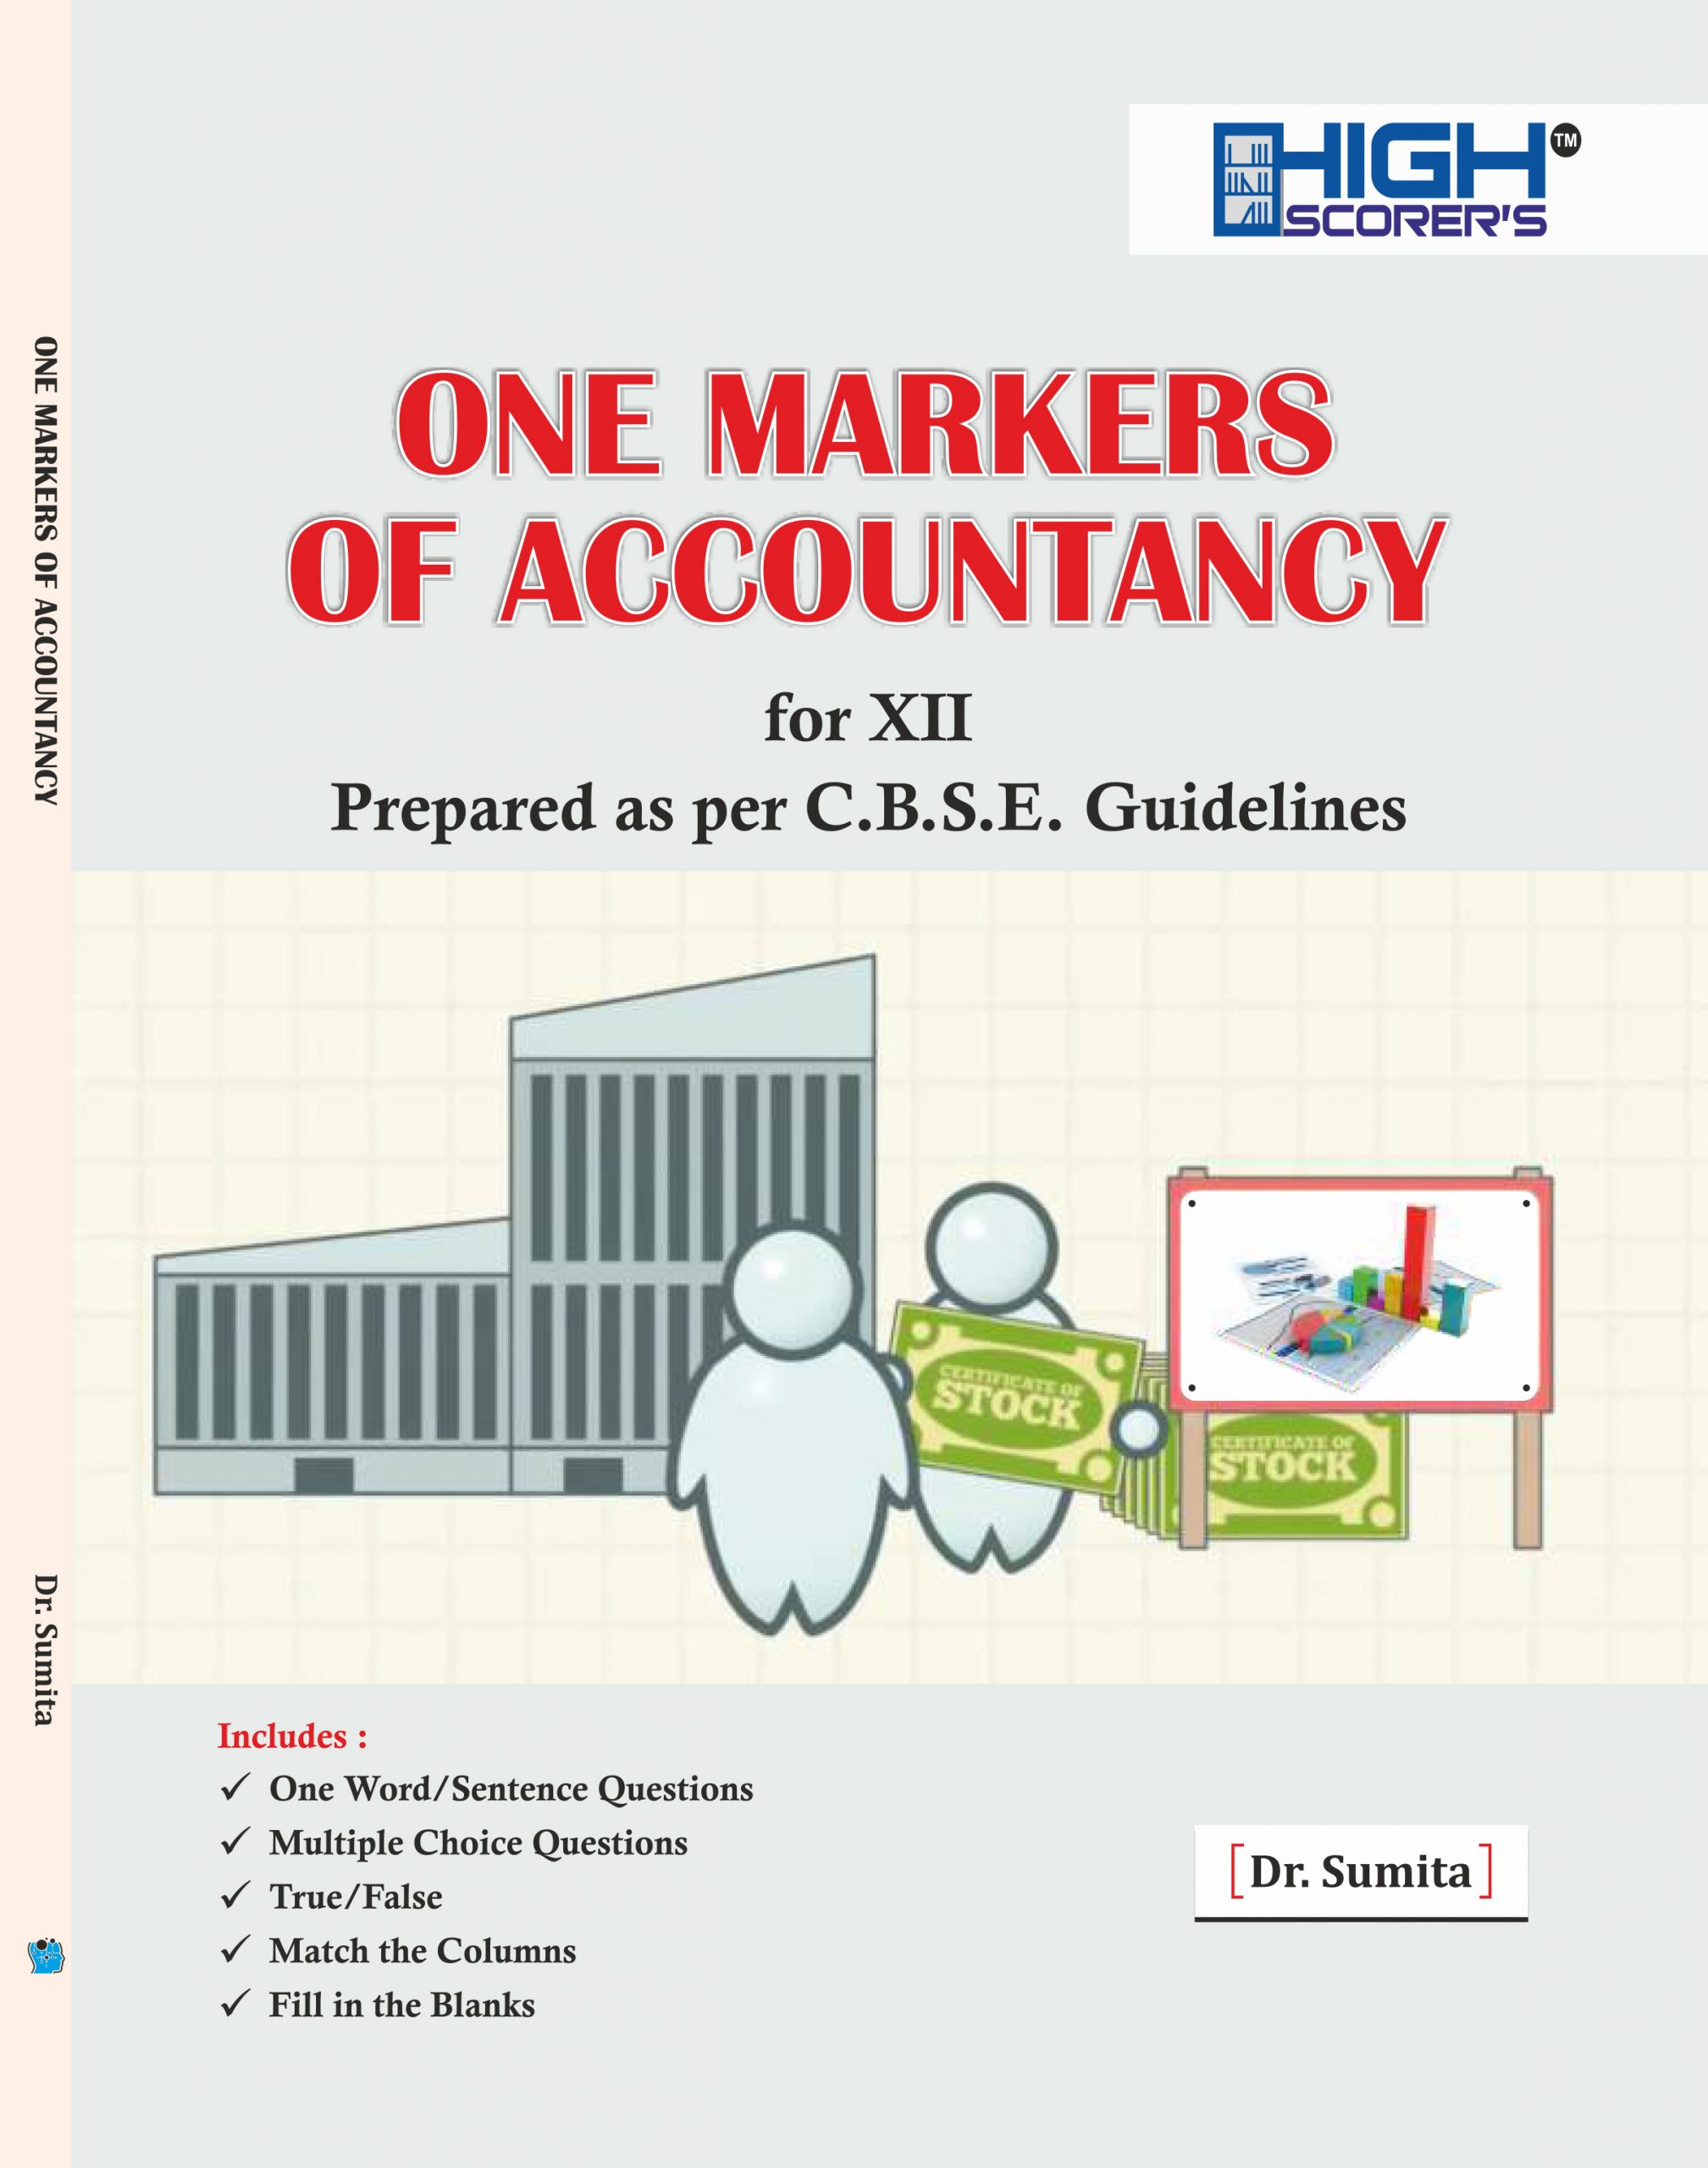 High Scorer's One Markers of Accountancy for XII Prepared as Per C.B.S.E. Guidelines by Dr. Sumita (Mohindra Publishing House) for 2021 Exam